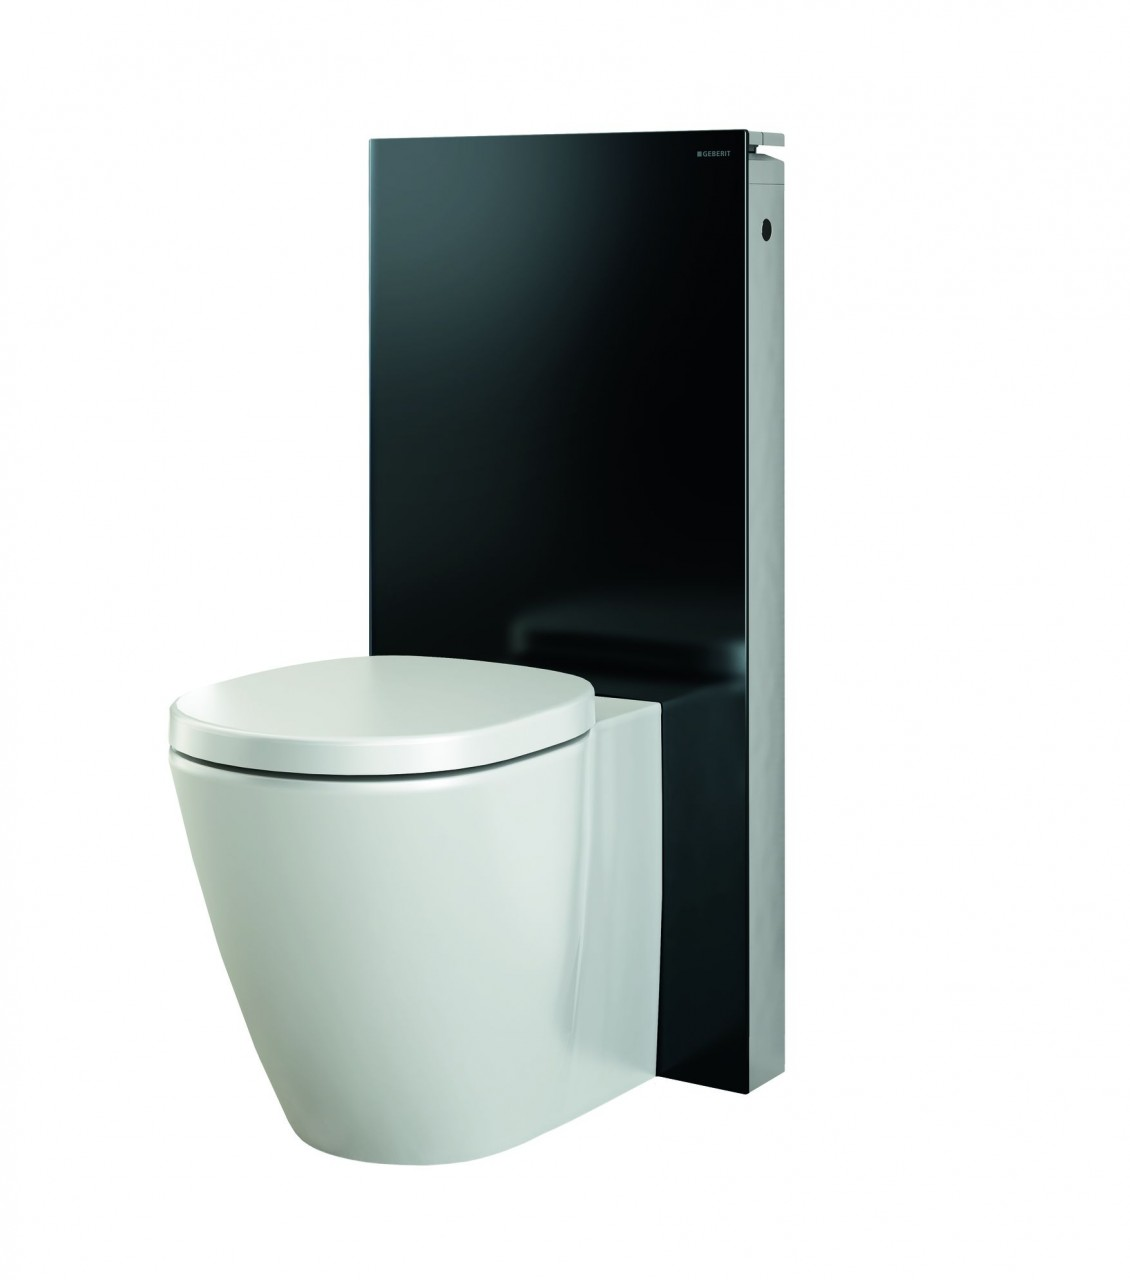 geberit monolith 101 for floor mounted wc black glass. Black Bedroom Furniture Sets. Home Design Ideas